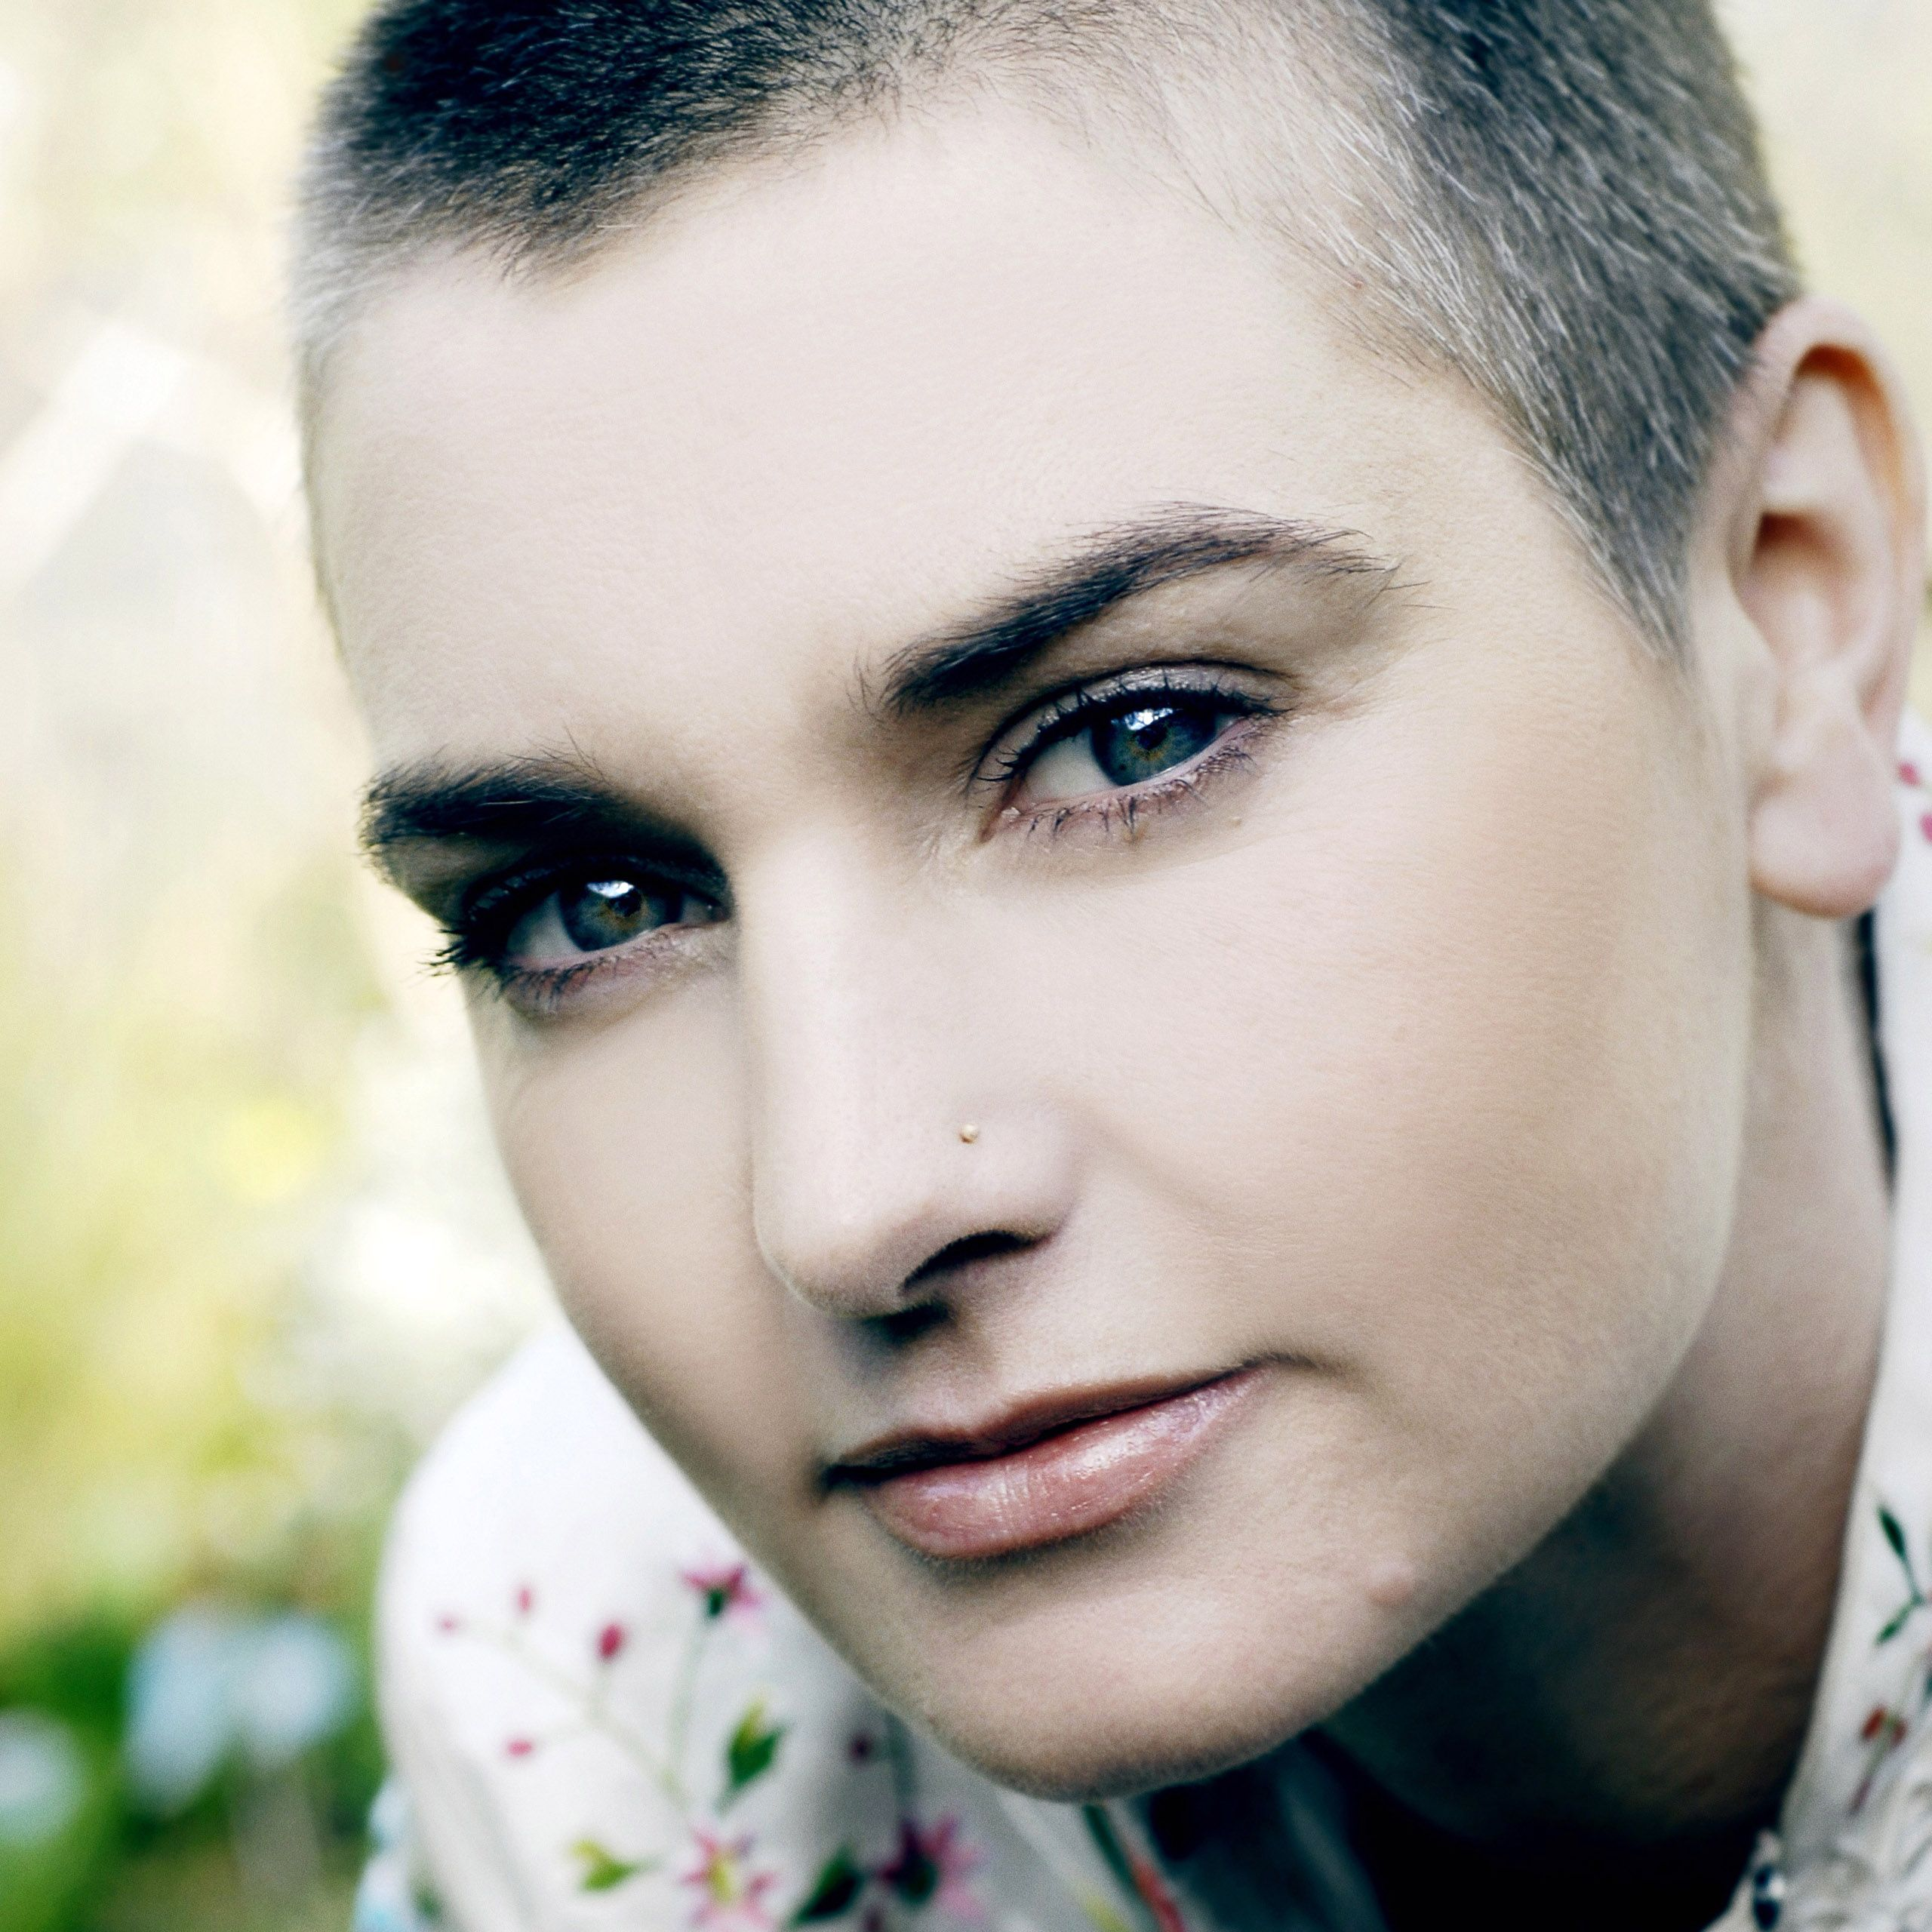 Sinead O'Connor is one rare woman who, with a crew cut, just looks stunning.  She has the most compelling eyes and that wonderful Irish colouring . . . fair skin, blue-blue eyes and very dark hair.